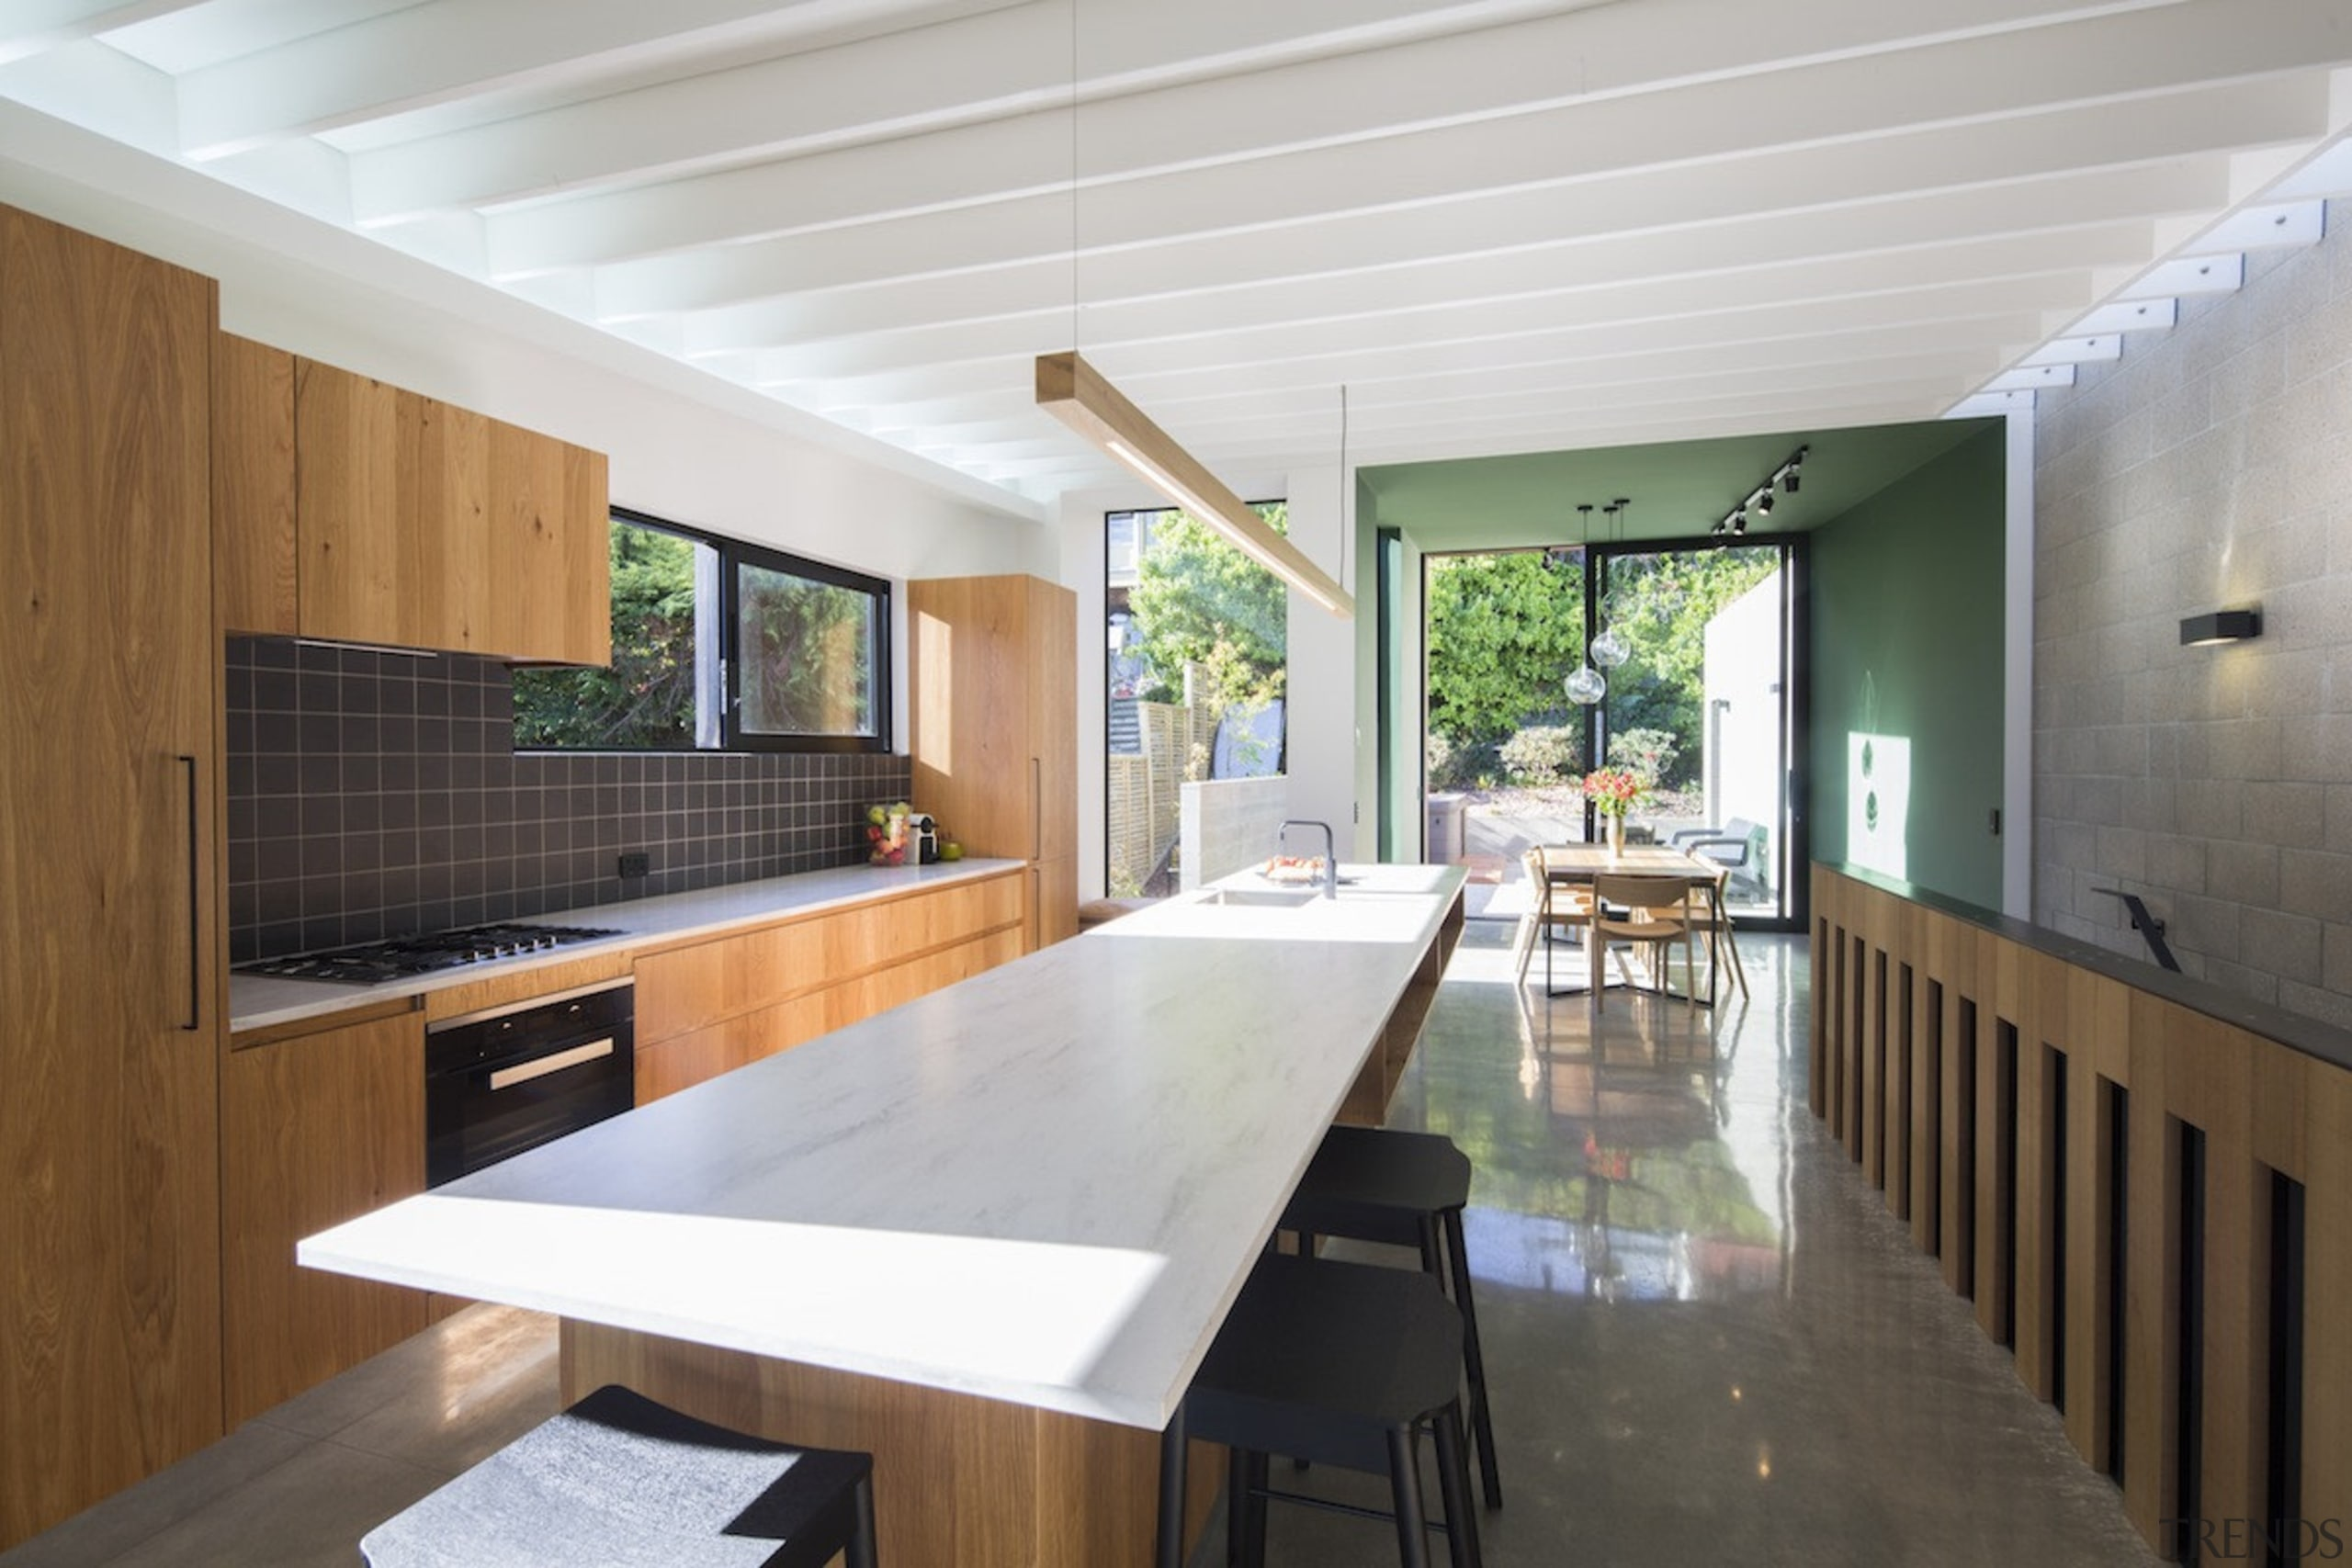 Arrowtown-based Bennie Builders was the only Southern Lakes architecture, daylighting, house, interior design, real estate, table, white, gray